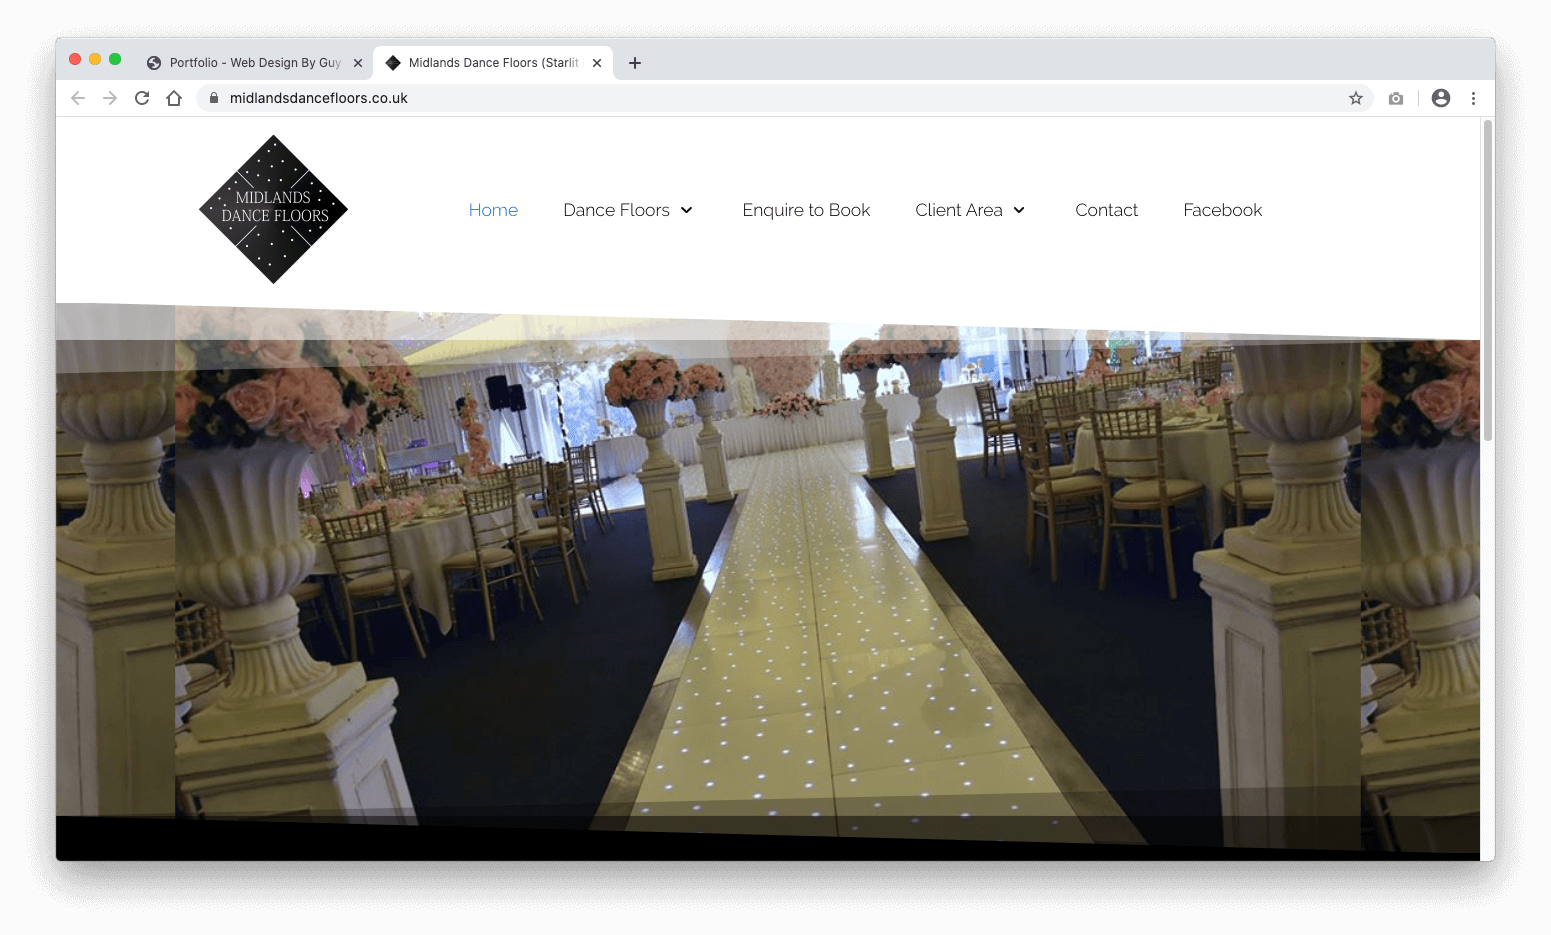 Midlands Dance Floors Website | Hire Starlit Dance Floor